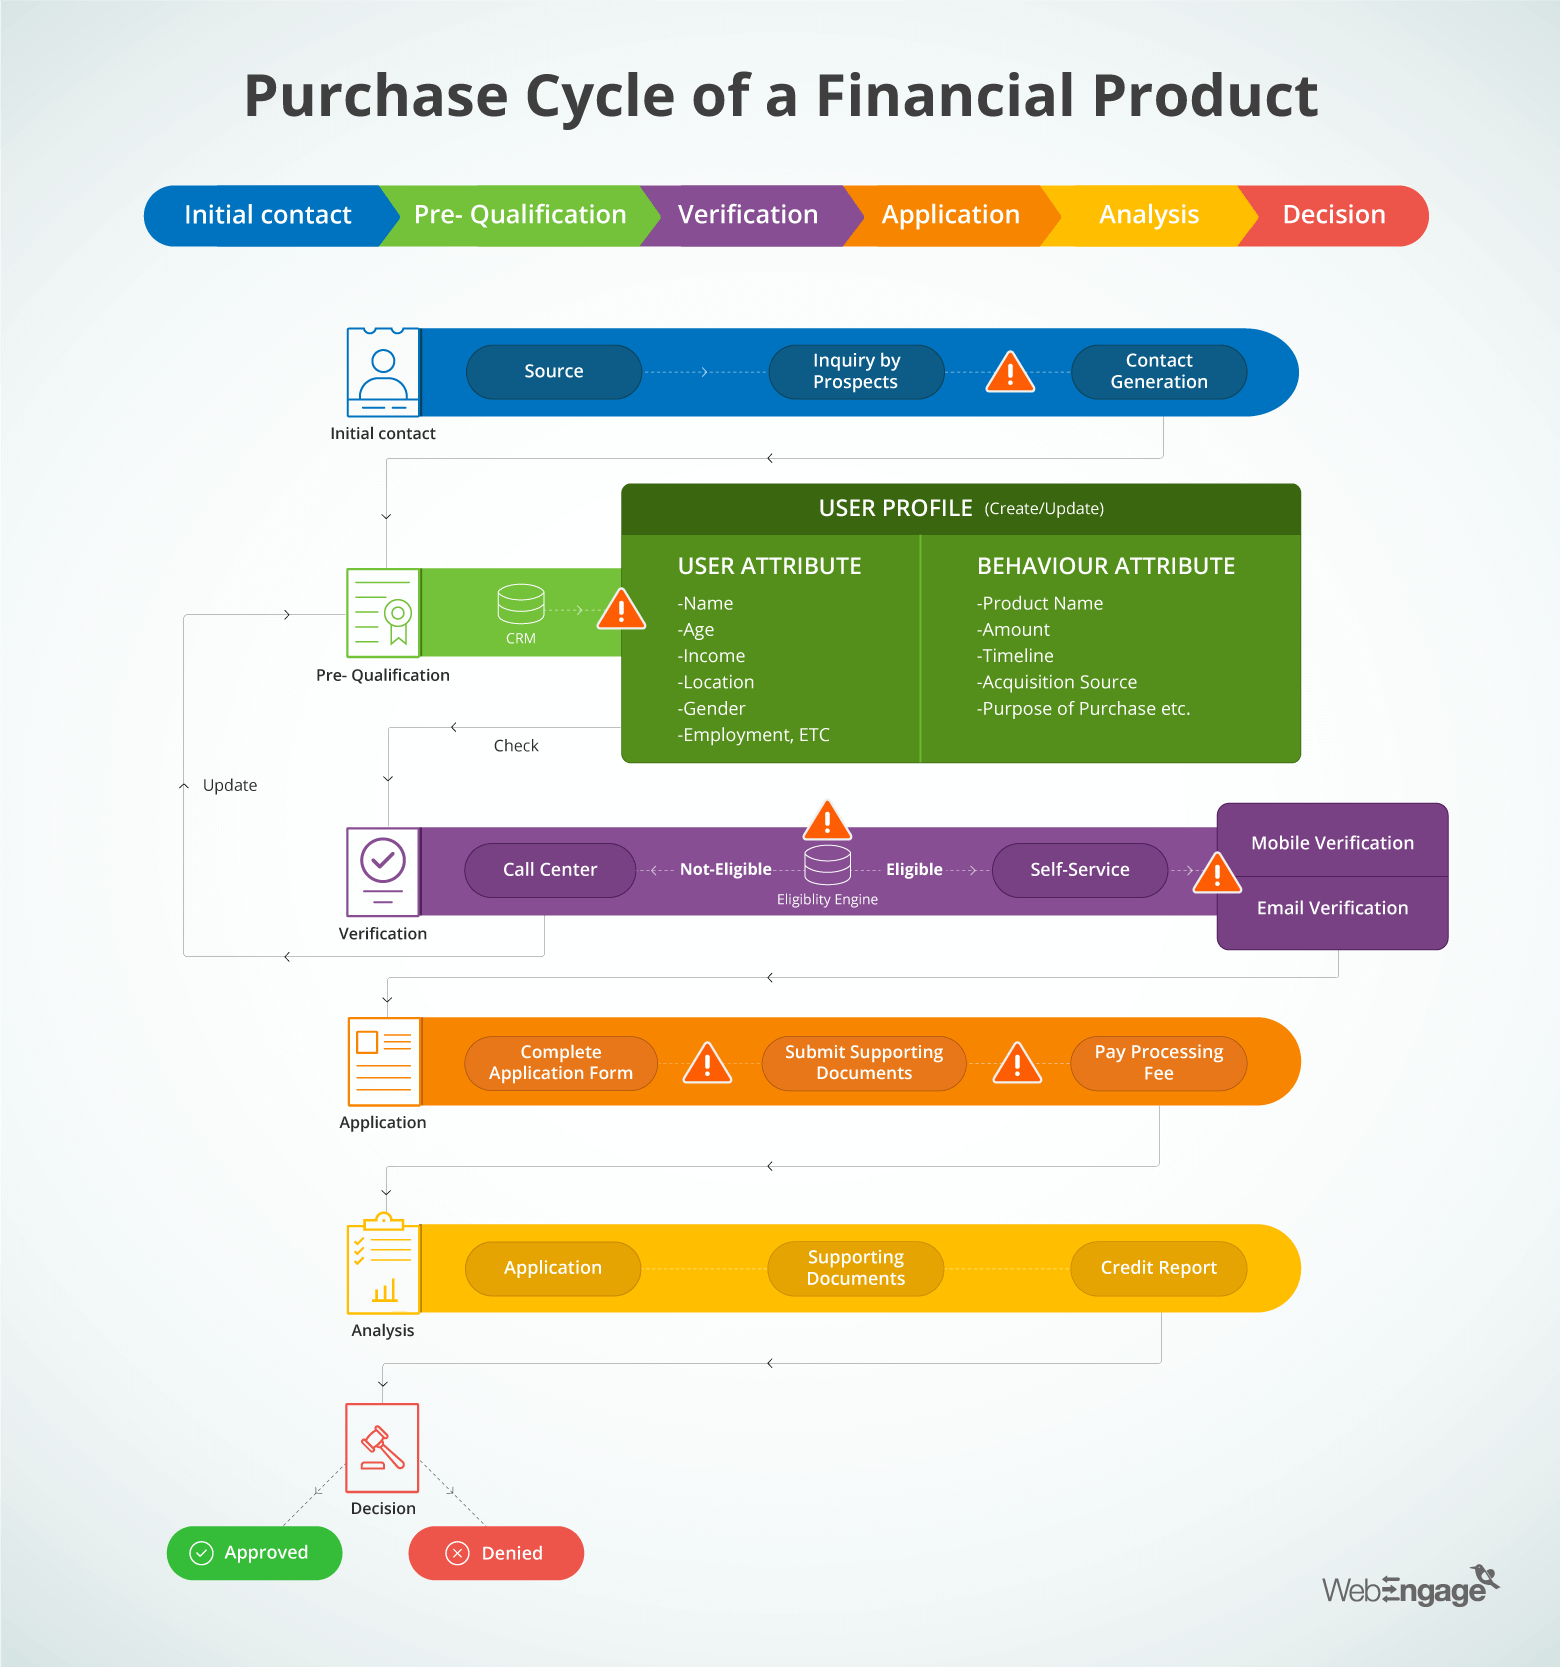 Leakages in the Purchase Cycle flow of Financial Product